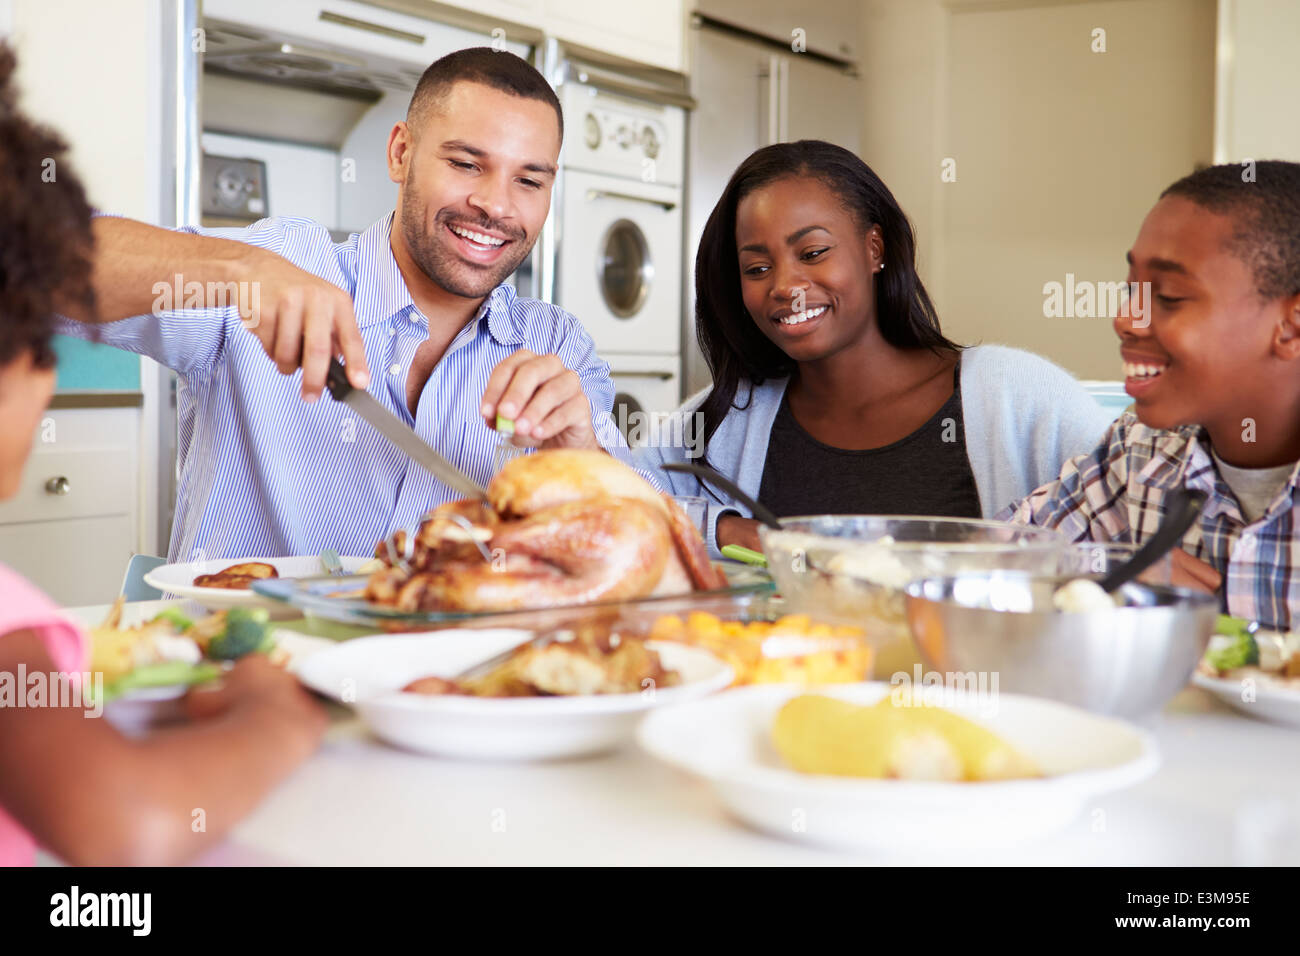 Family Sitting Around Table At Home Eating Meal - Stock Image